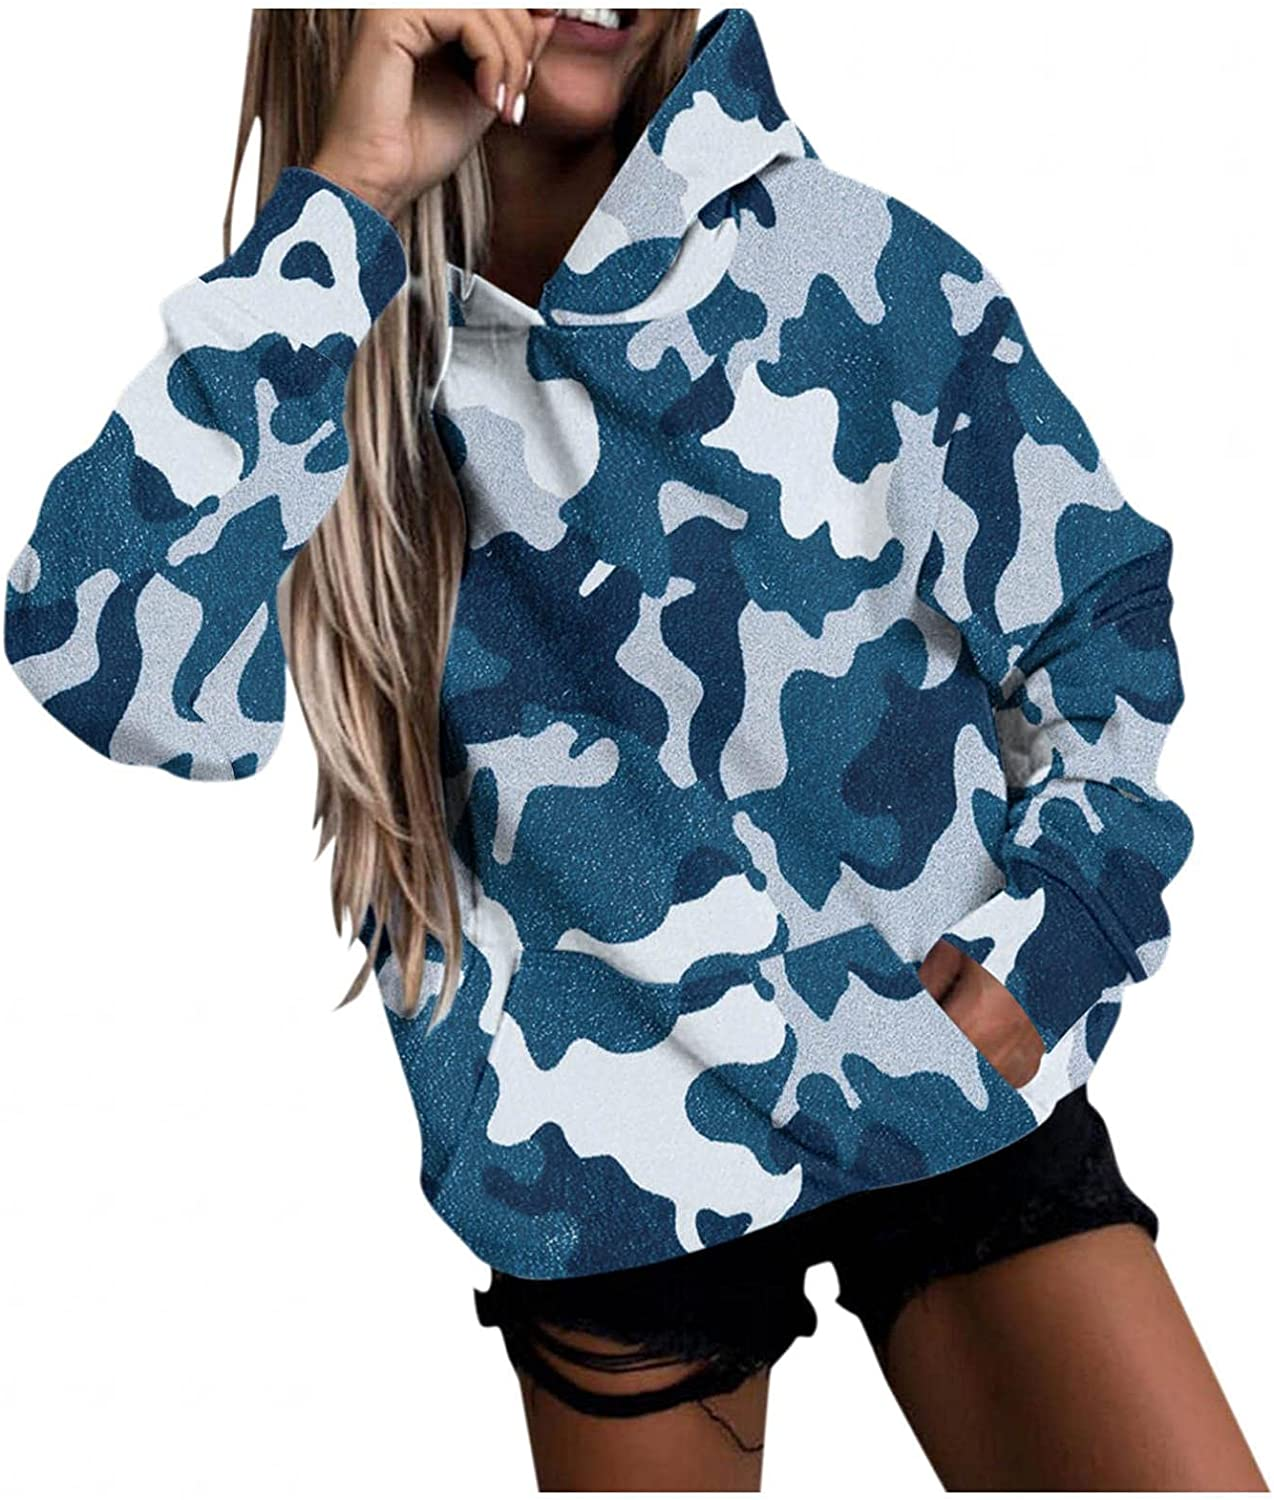 Toeava Sweatshirt for Women Casual Hoodies Long Sleeve Camouflage Graphic Pullover Tops Loose Sweatshirts with Pocket